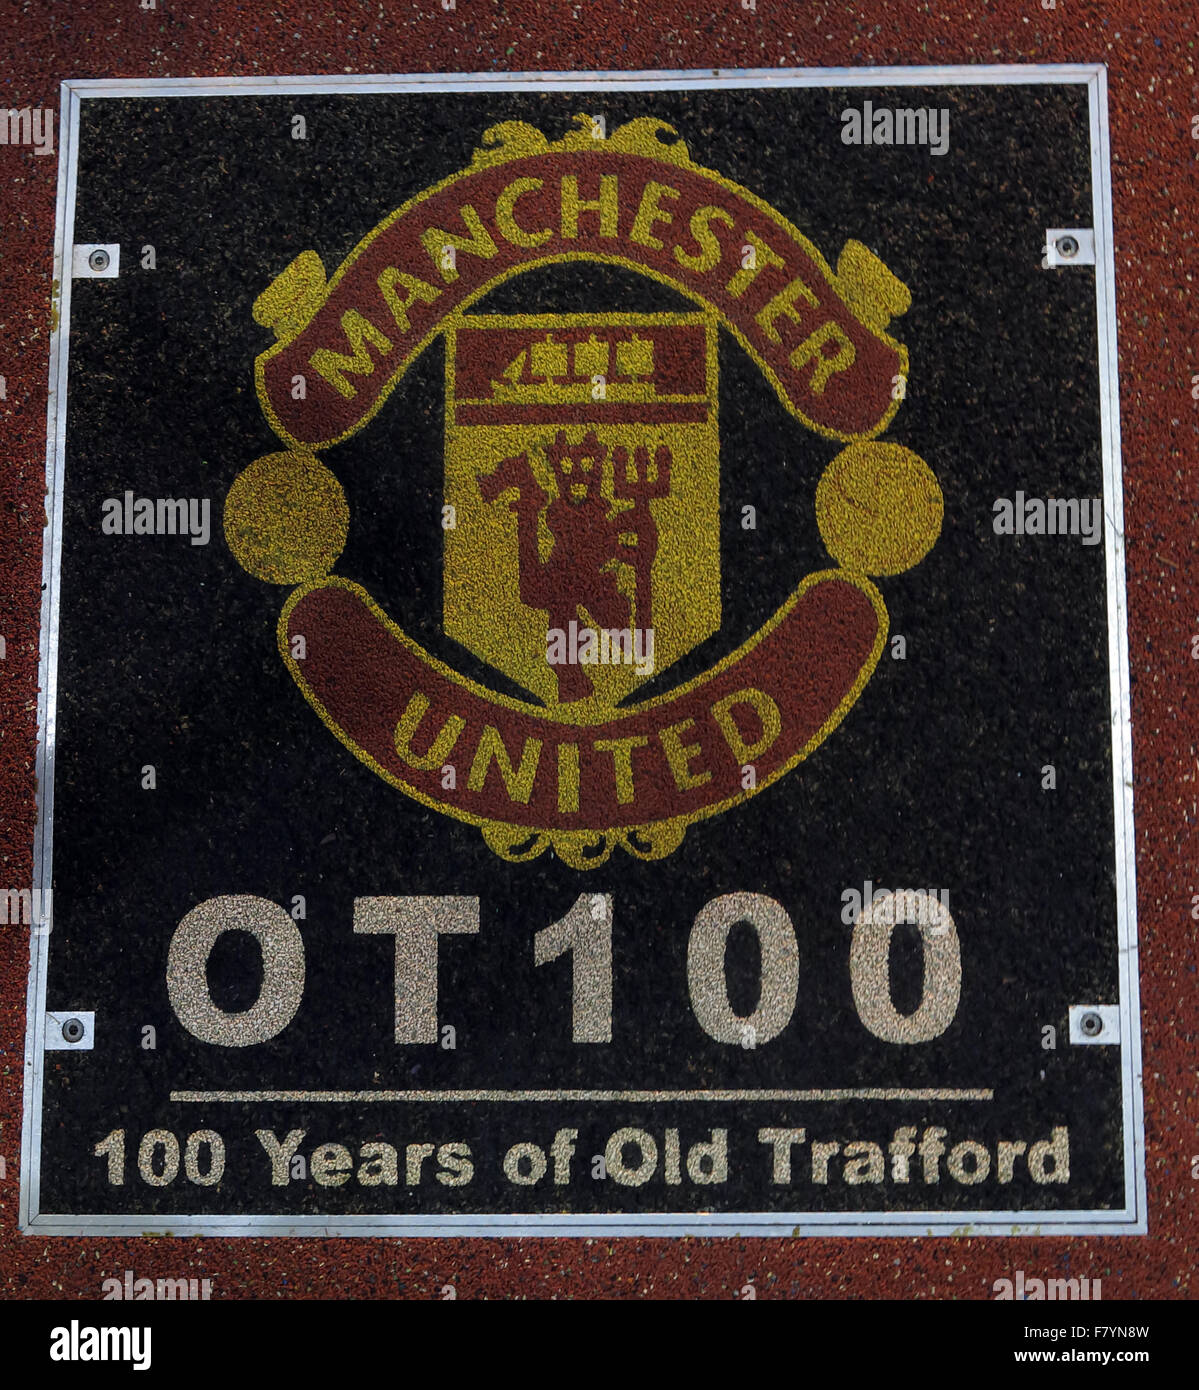 site,of,containing,United,memorabilia,sealed,by,the,relatives,and,buried,close,to,remaining,part,original,stadium,year,OT100,England,UK,black,red,white,time capsule,centre tunnel,100 years,100 years of Old Trafford,Manchester United Stadium,GoTonySmith,ManchesterUnited,MUFC,Mancester,MU,old,Trafford,theatre,of,dreams,Lancs,Lancashire,RedDevils,Red,Devils,Football,Club,FC,allseater,all-seater,association,away,balls,betting,britain,british,champions,changing,coaches,competition,culture,cups,division,documentary,dressing,england,english,fans,fixtures,game,goals,ground,heritage,history,home,homesoffootball,hooliganism,justice,kick,kick-off,league,managers,midweek,pitch,players,police,premier,promotion,referees,regulations,relegation,results,room,roots,rules,saturday,saturdays,scorers,season,seated,seater,seating,shinpads,shirt,shirts,sizes,sky,skysports,soccer,social,socks,sponsors,sport,stadia,stadium,standing,sundays,sunday,system,tables,team,terraces,tradition,trainers,Adidas,Puma,Buy Pictures of,Buy Images Of,Old Trafford,Theatre of Dreams,Theater of dreams,Red Devils